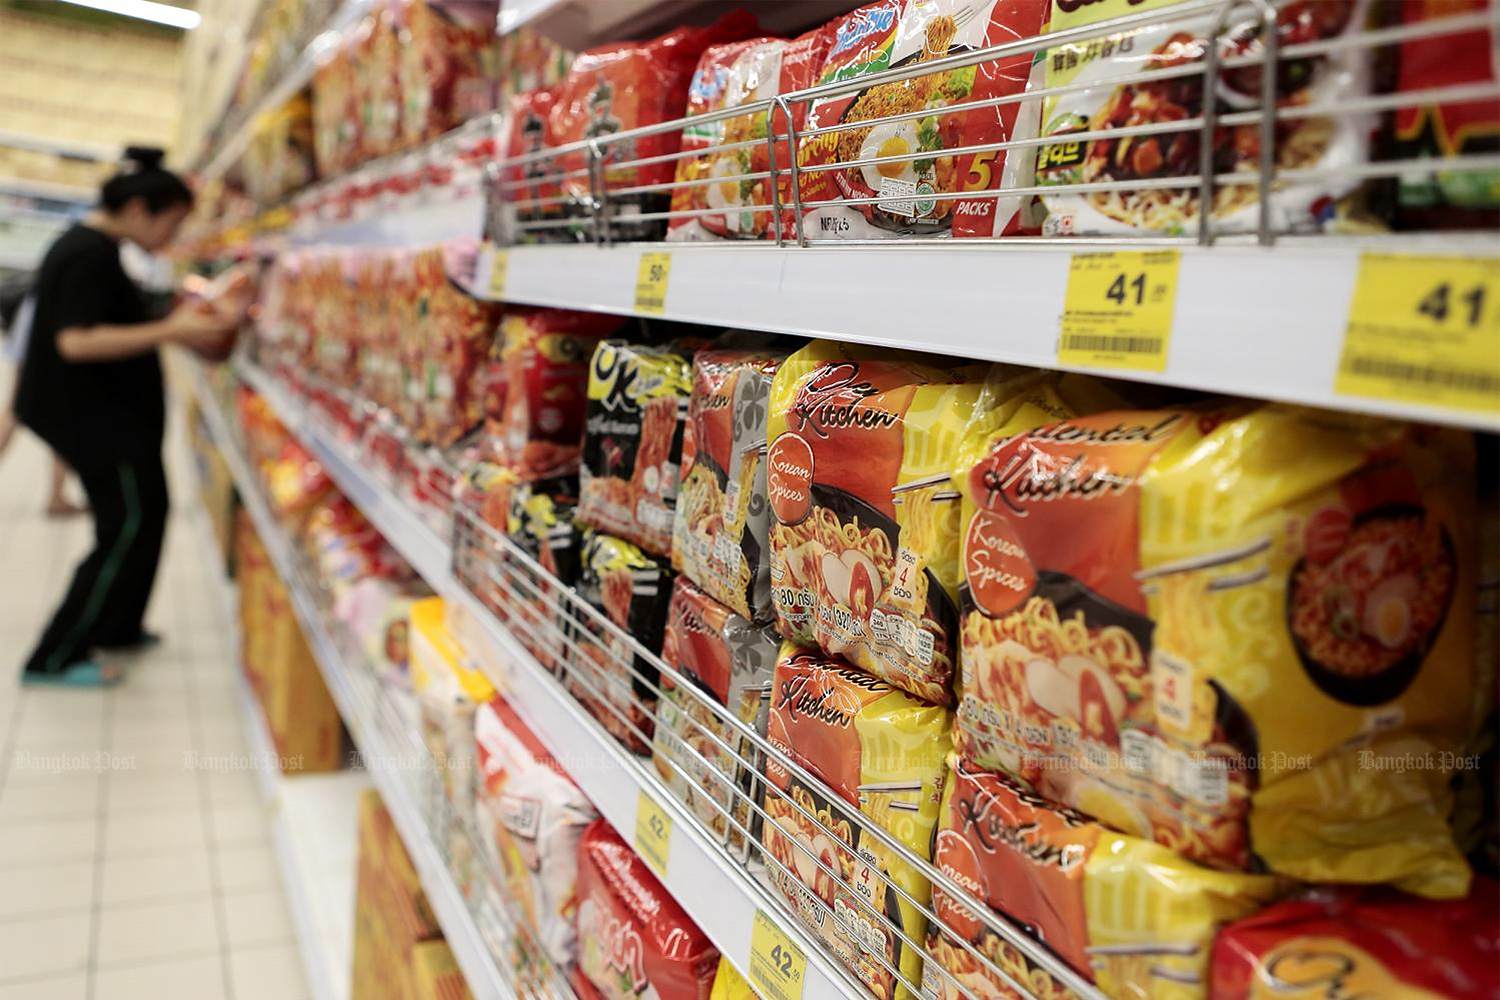 Instant noodles and a wide range of consumer products could be affected by an anti-dumping tariff on imported BOPP film.(Photo by Patipat Janthong)